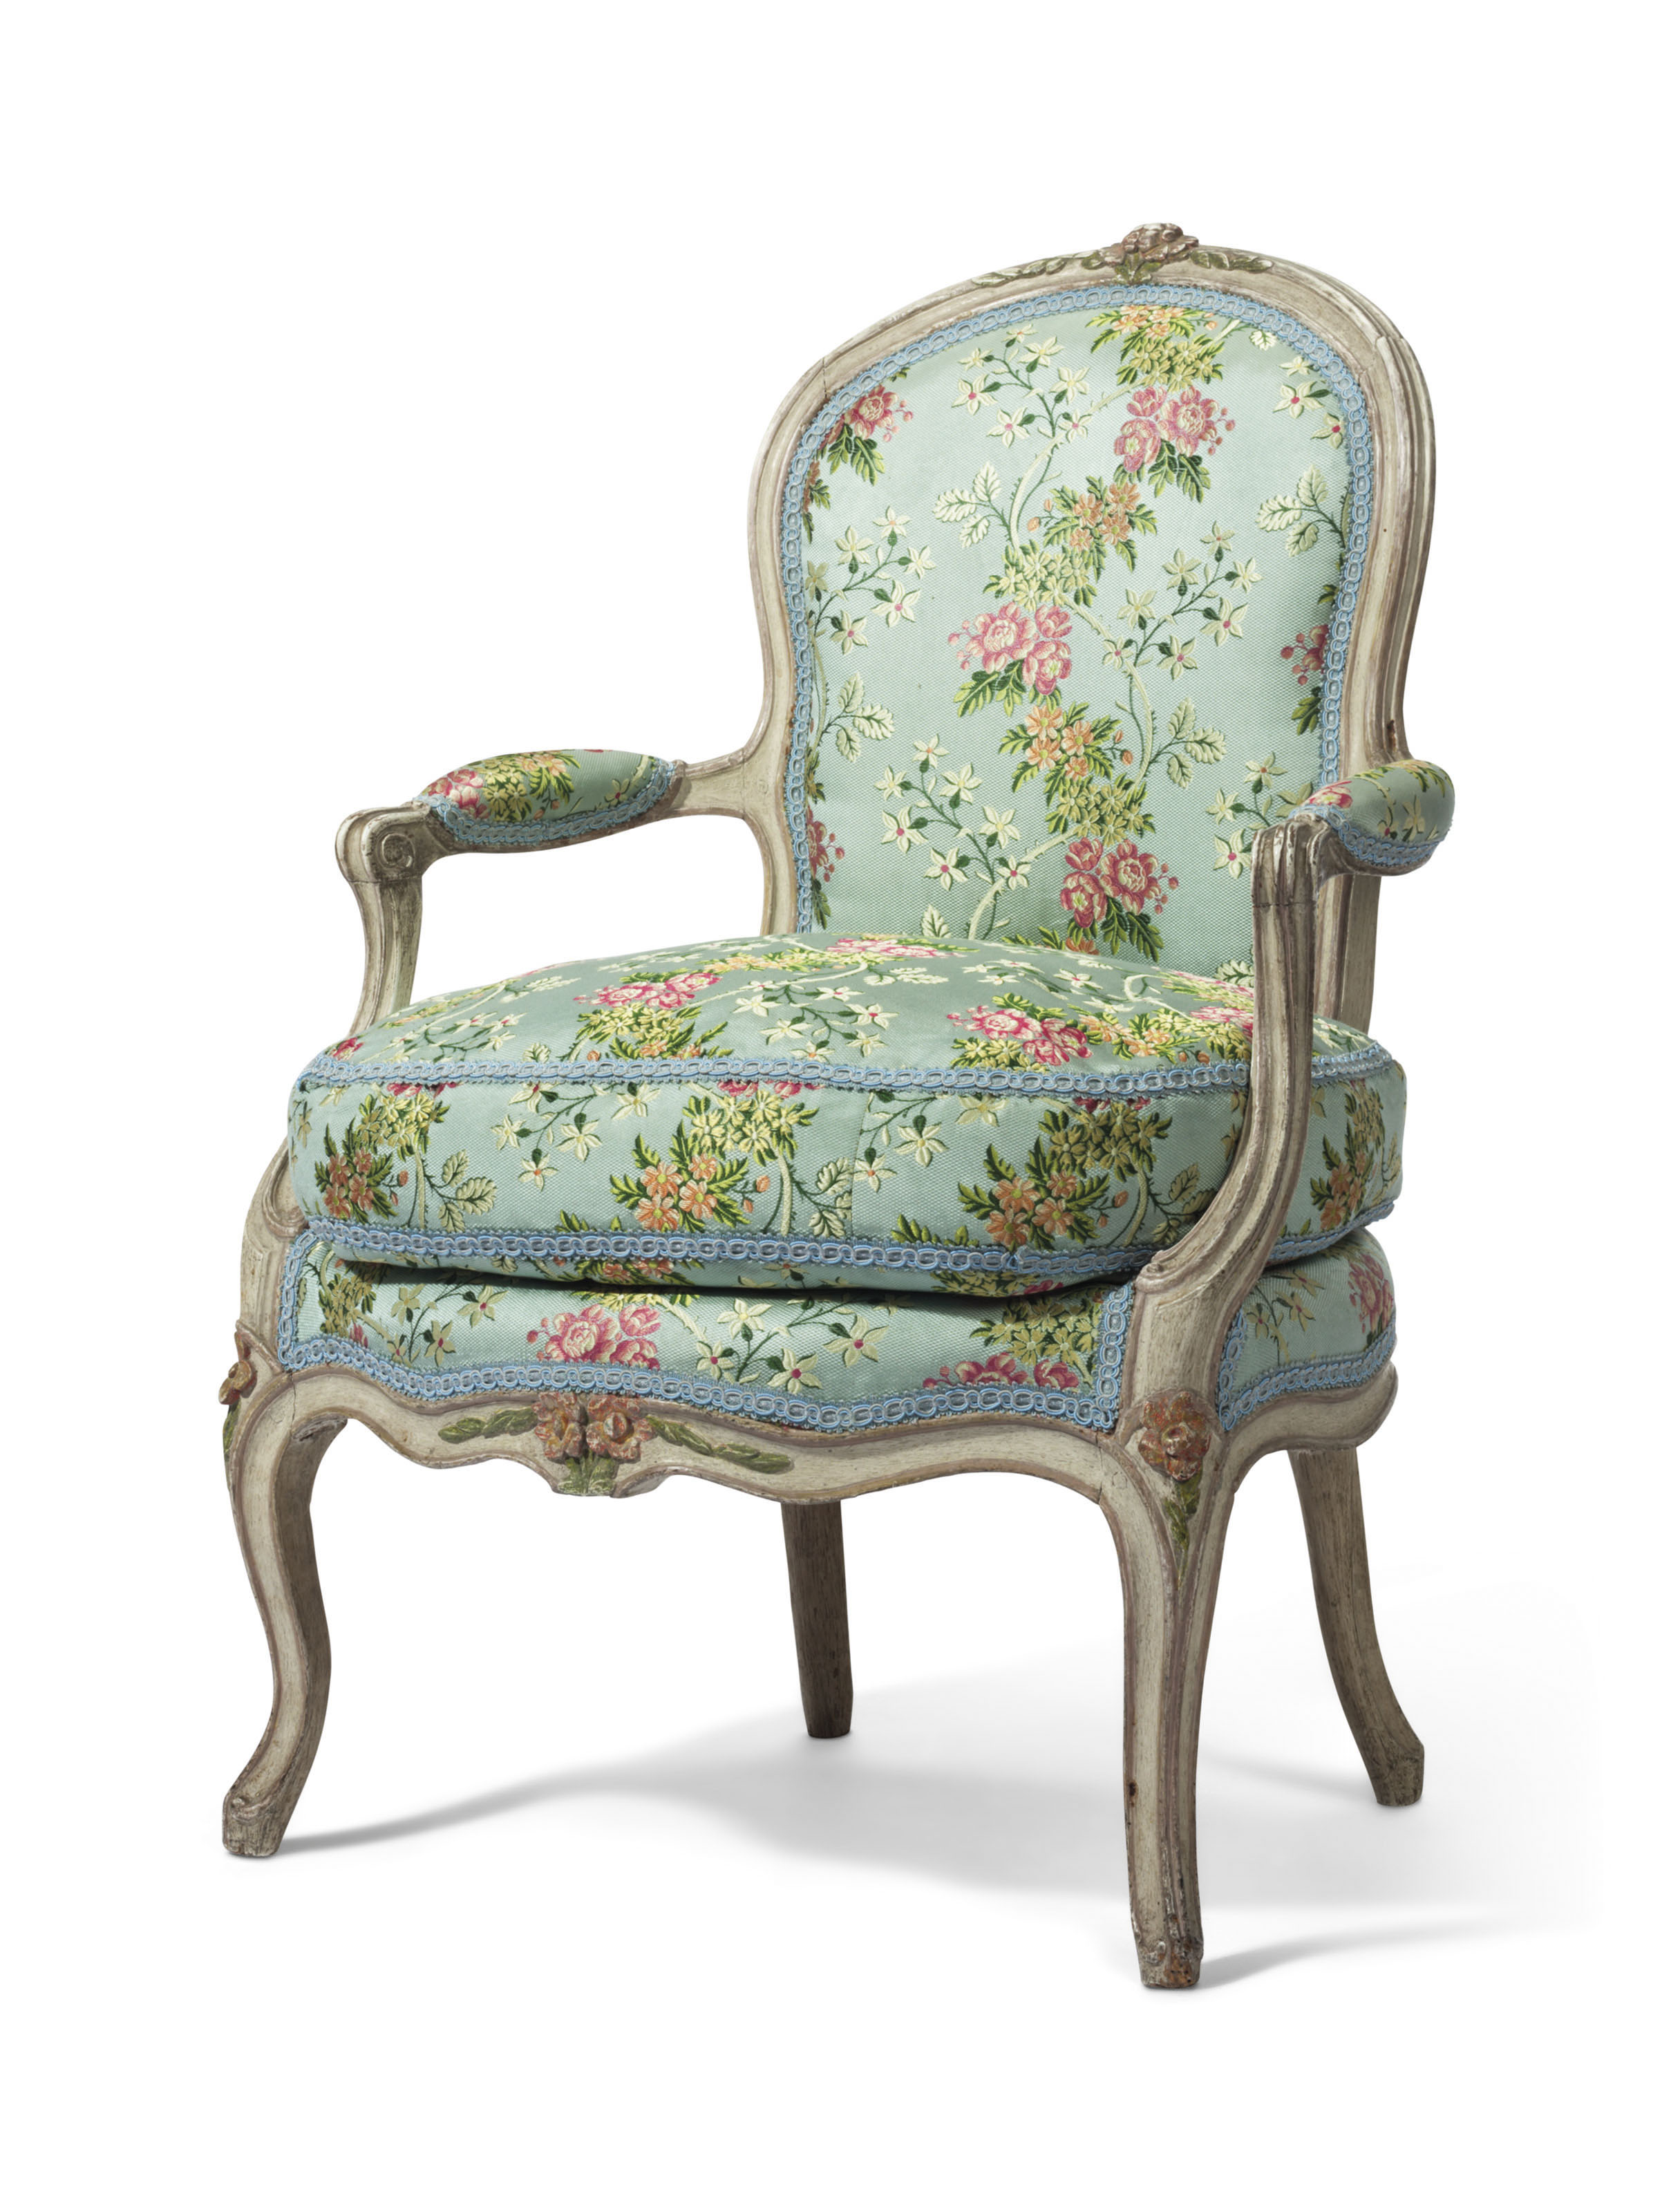 A LATE LOUIS XV GREY AND POLYCHROME-PAINTED FAUTEUIL